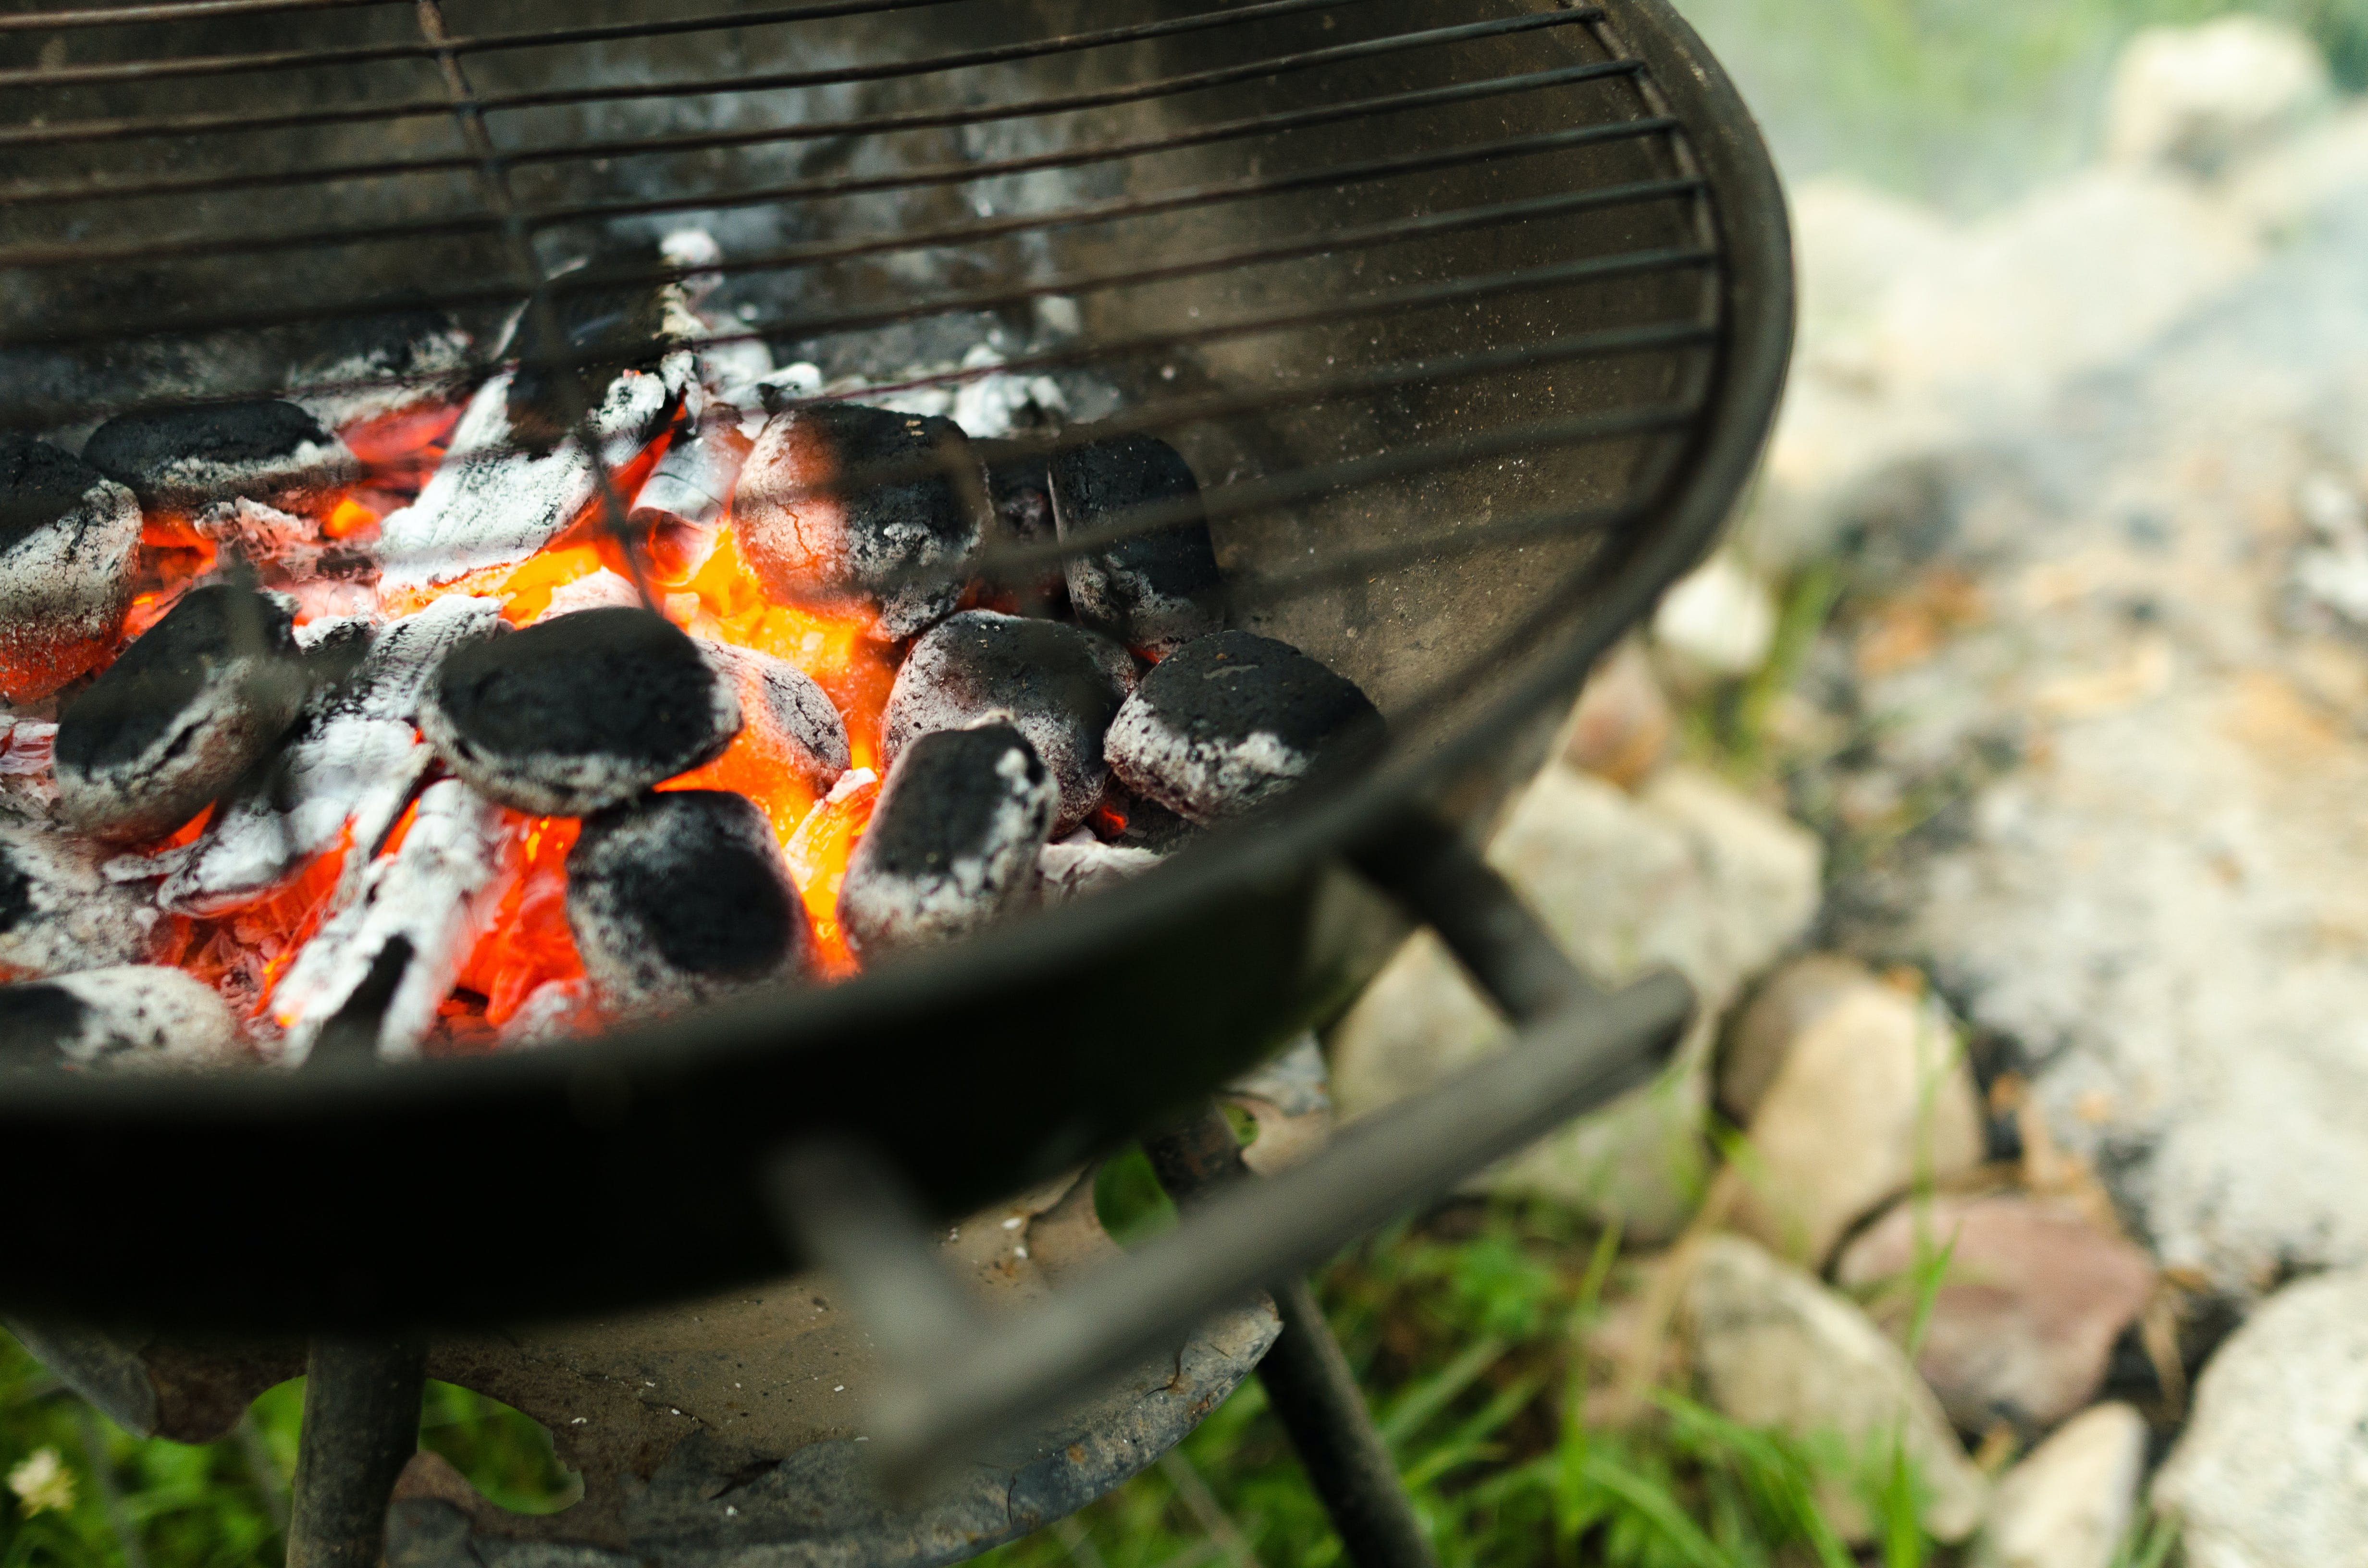 Shallow Focus Photography of Burning Charcoals